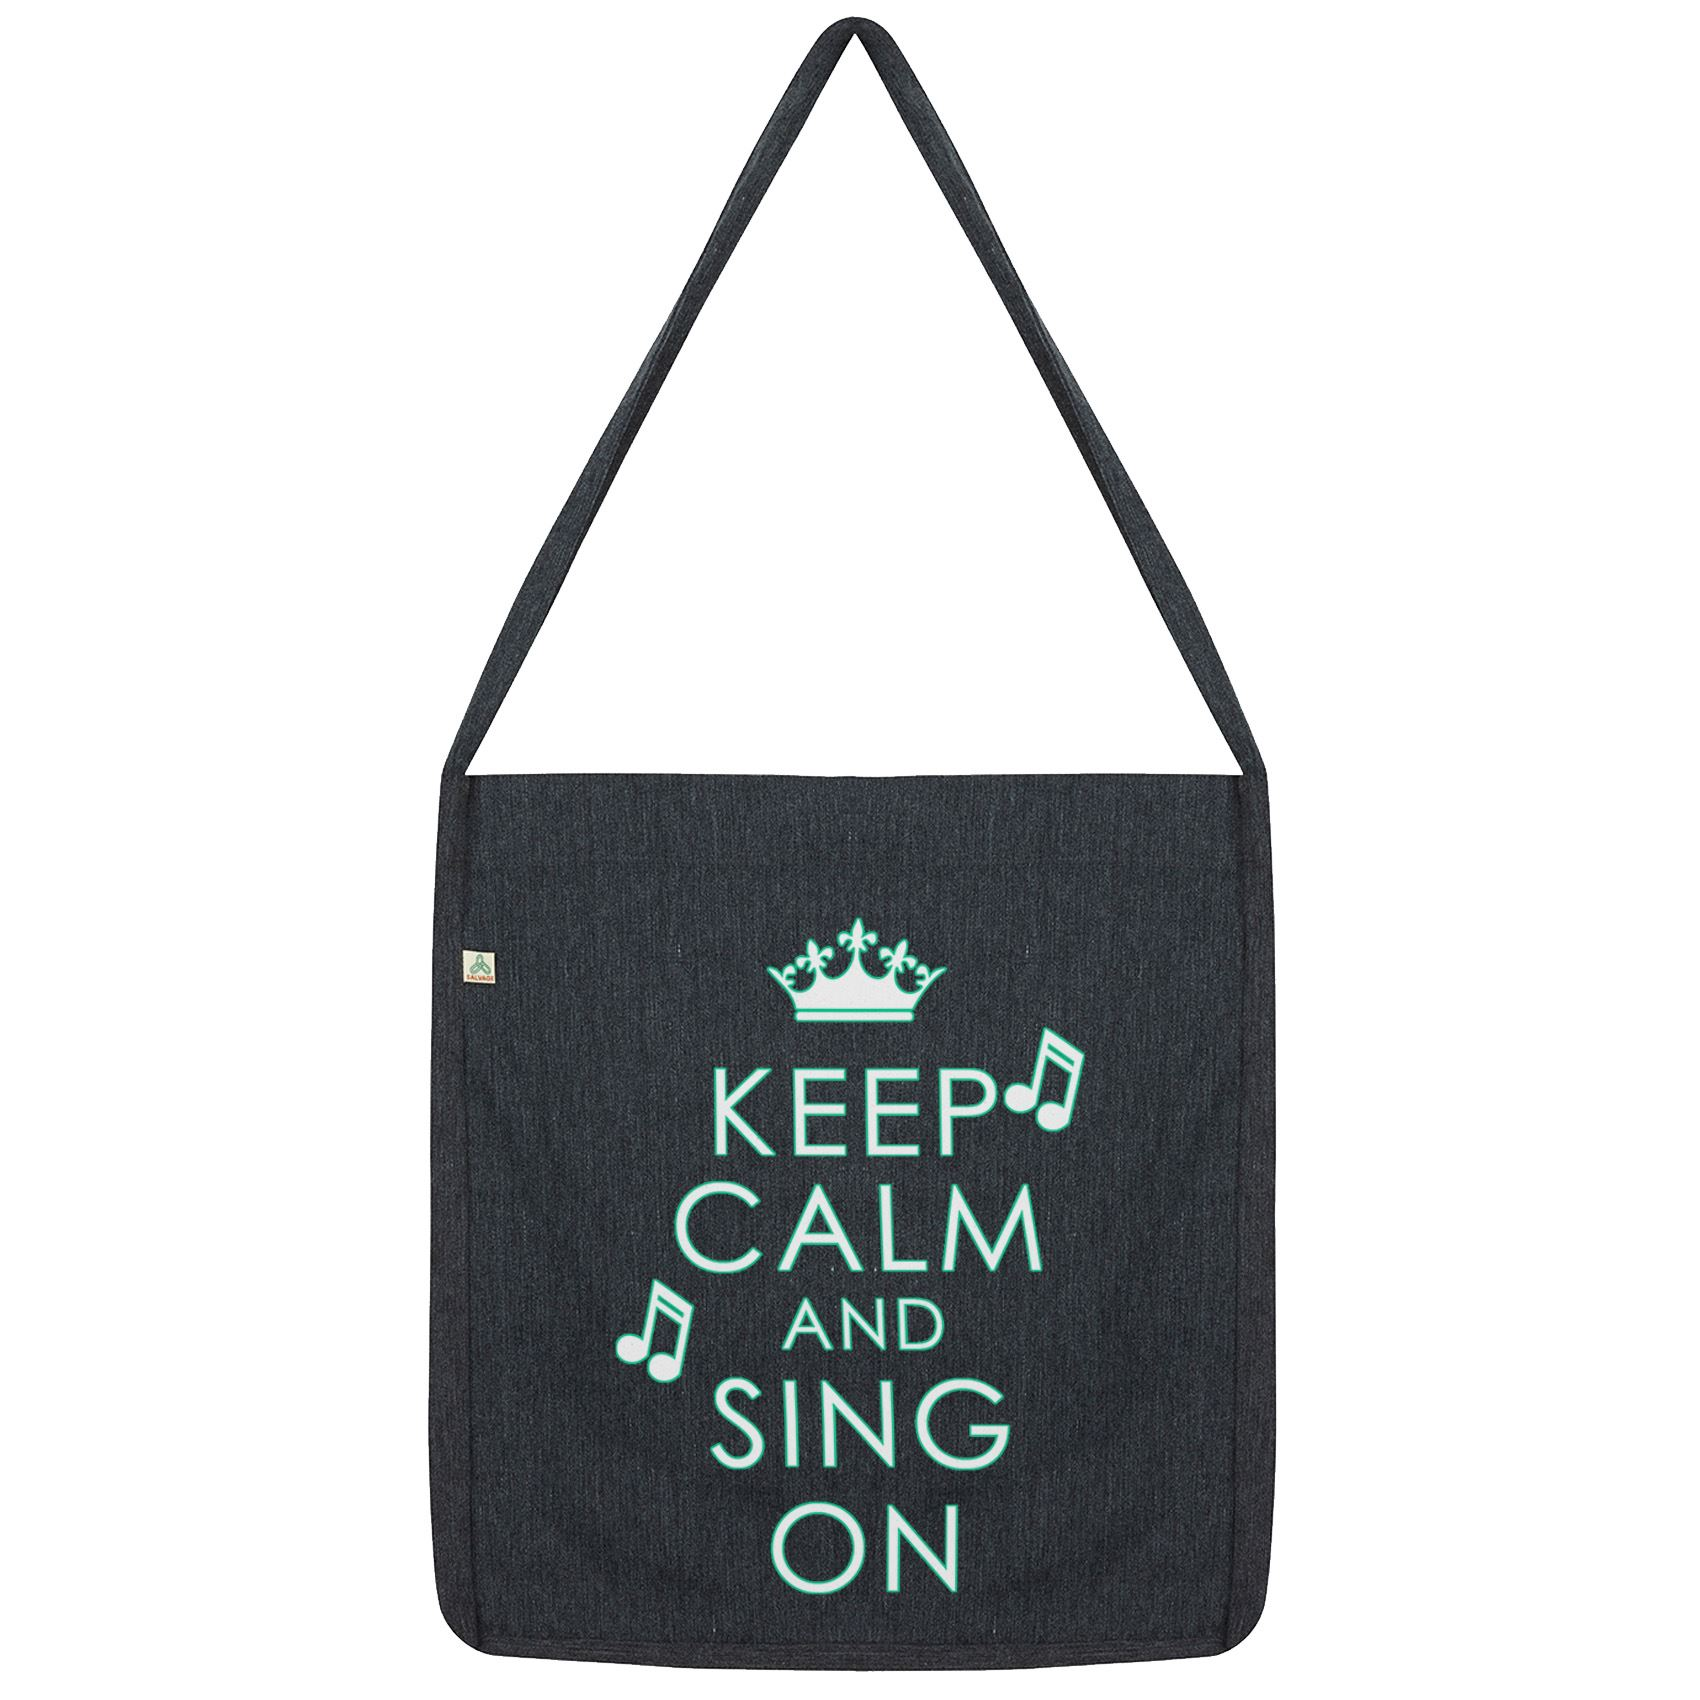 details about twisted envy keep calm and sing on tote bag